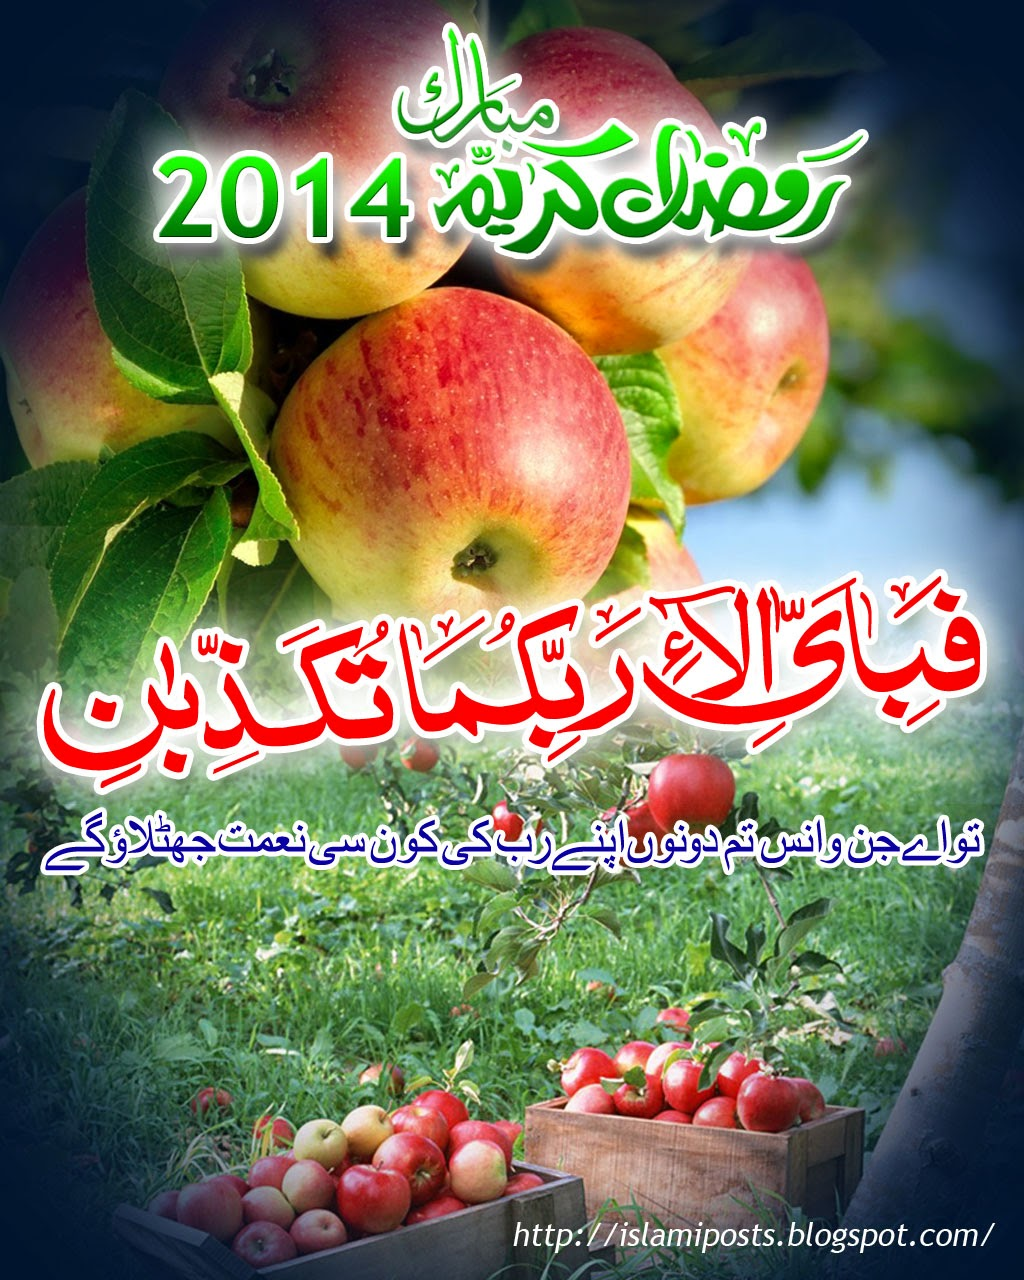 ramzan wallpaper 2014